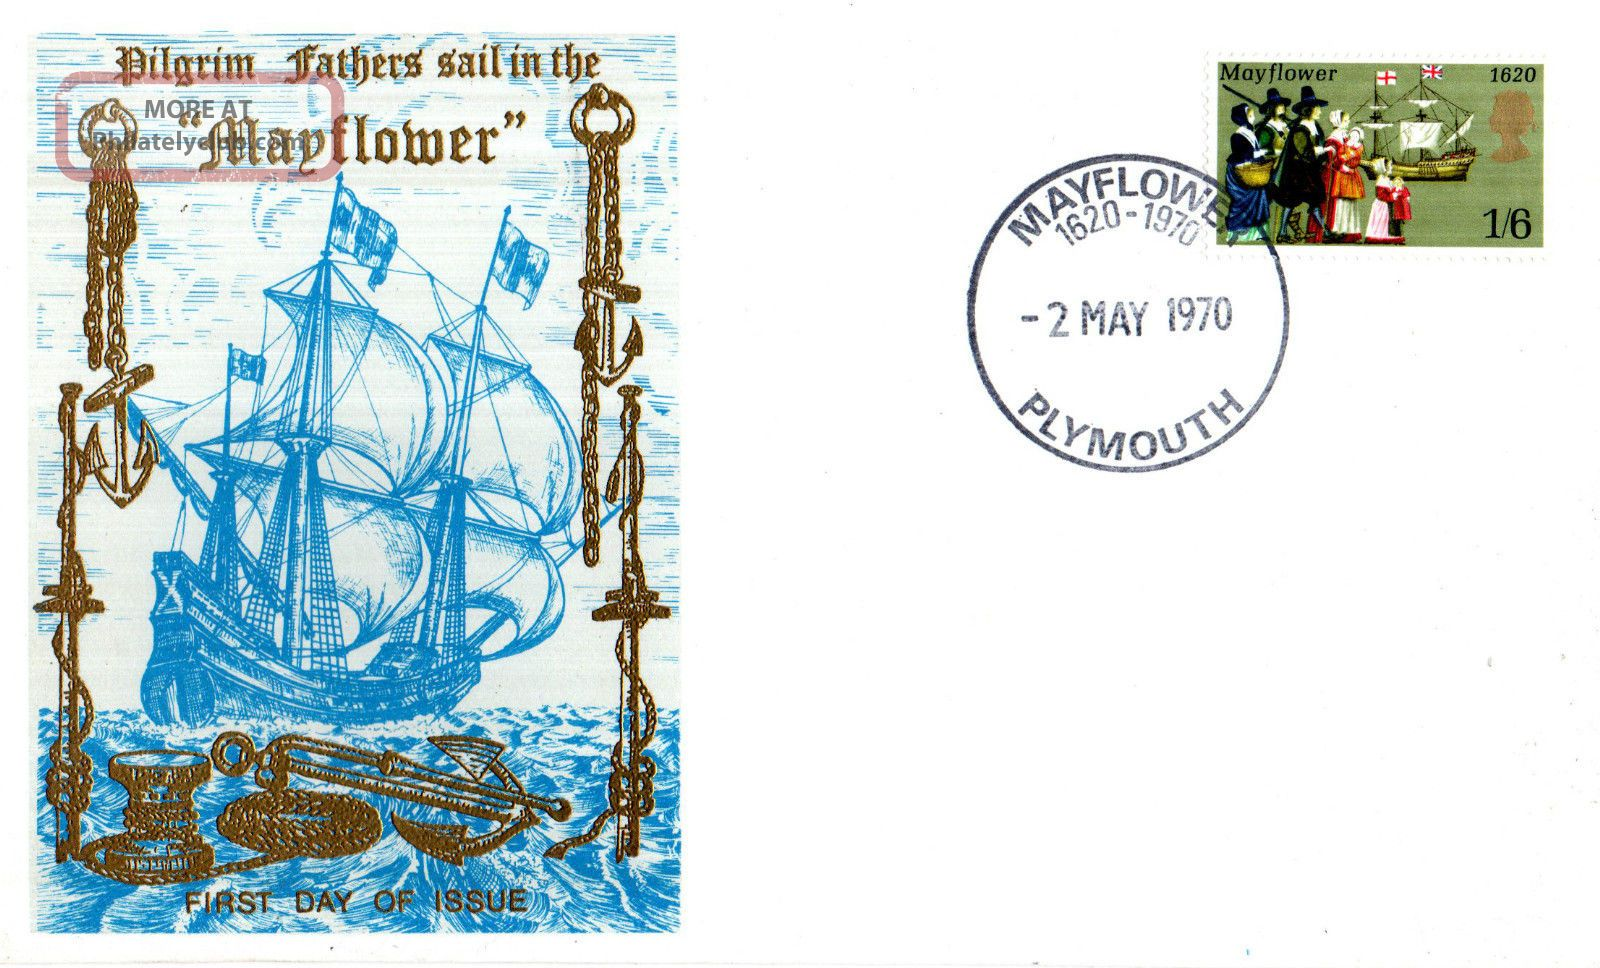 2 May 1970 Mayflower Thames Commemorative Cover Plymouth Shs Transportation photo